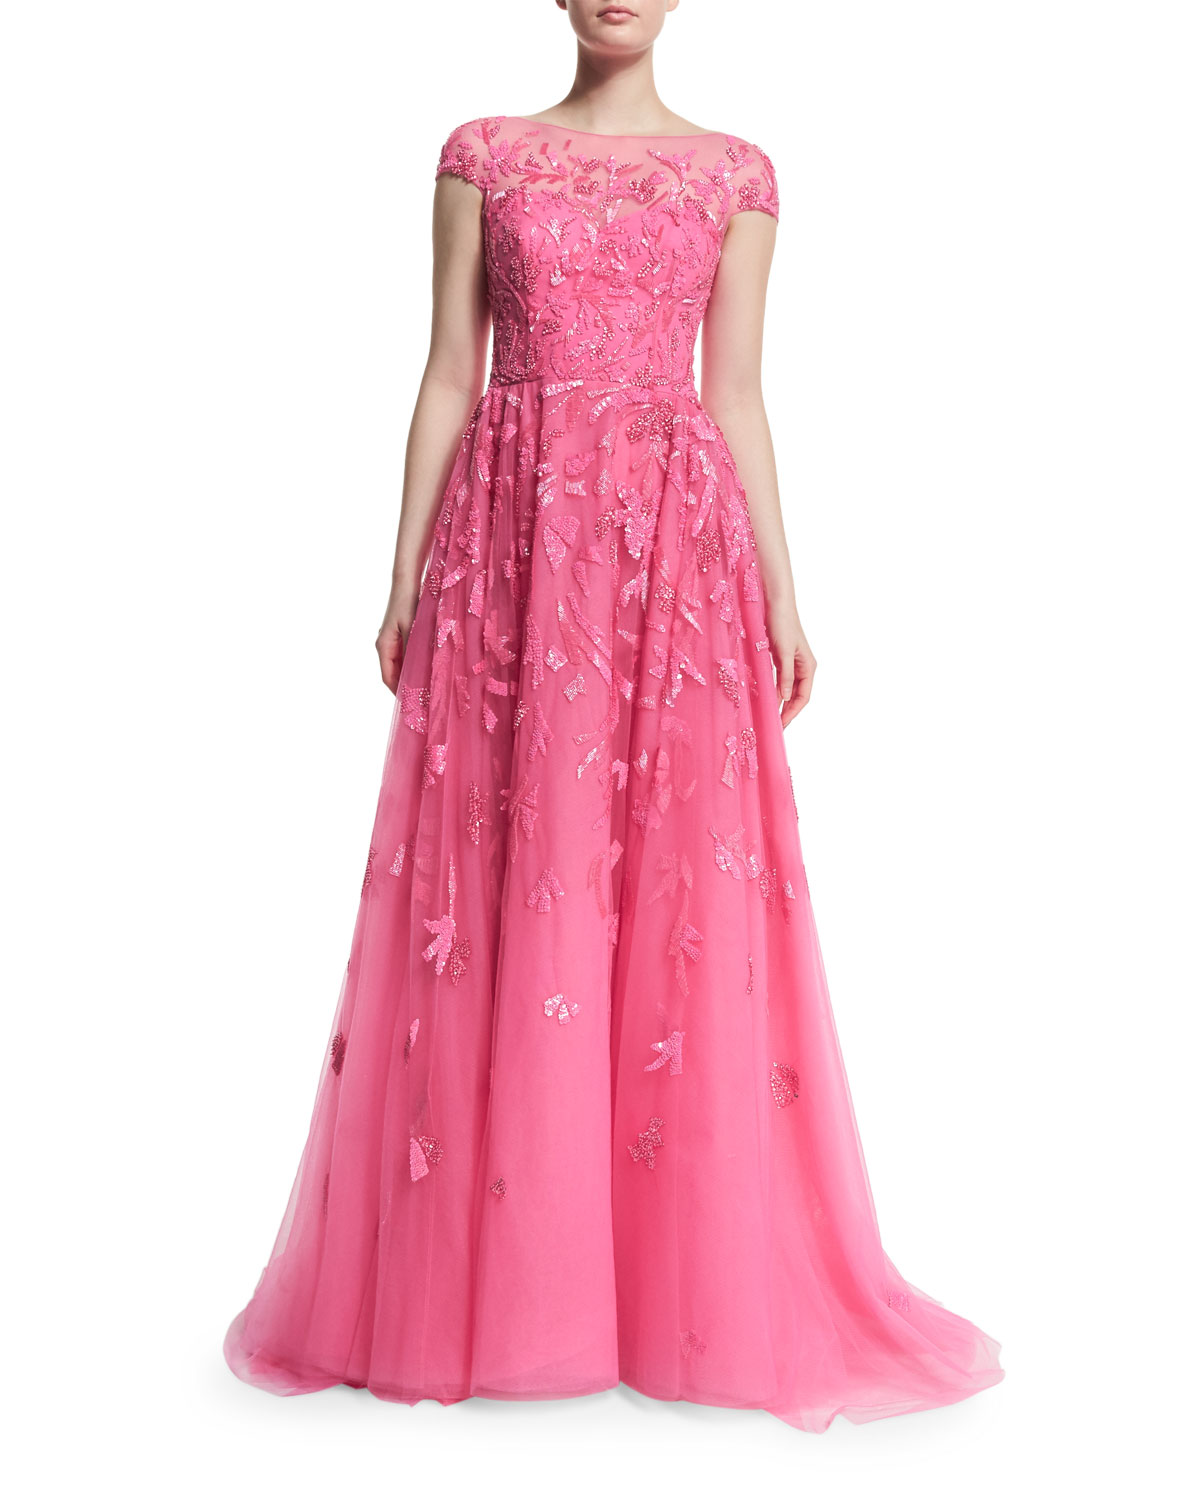 Cap-Sleeve Embellished Ball Gown, Shocking Pink